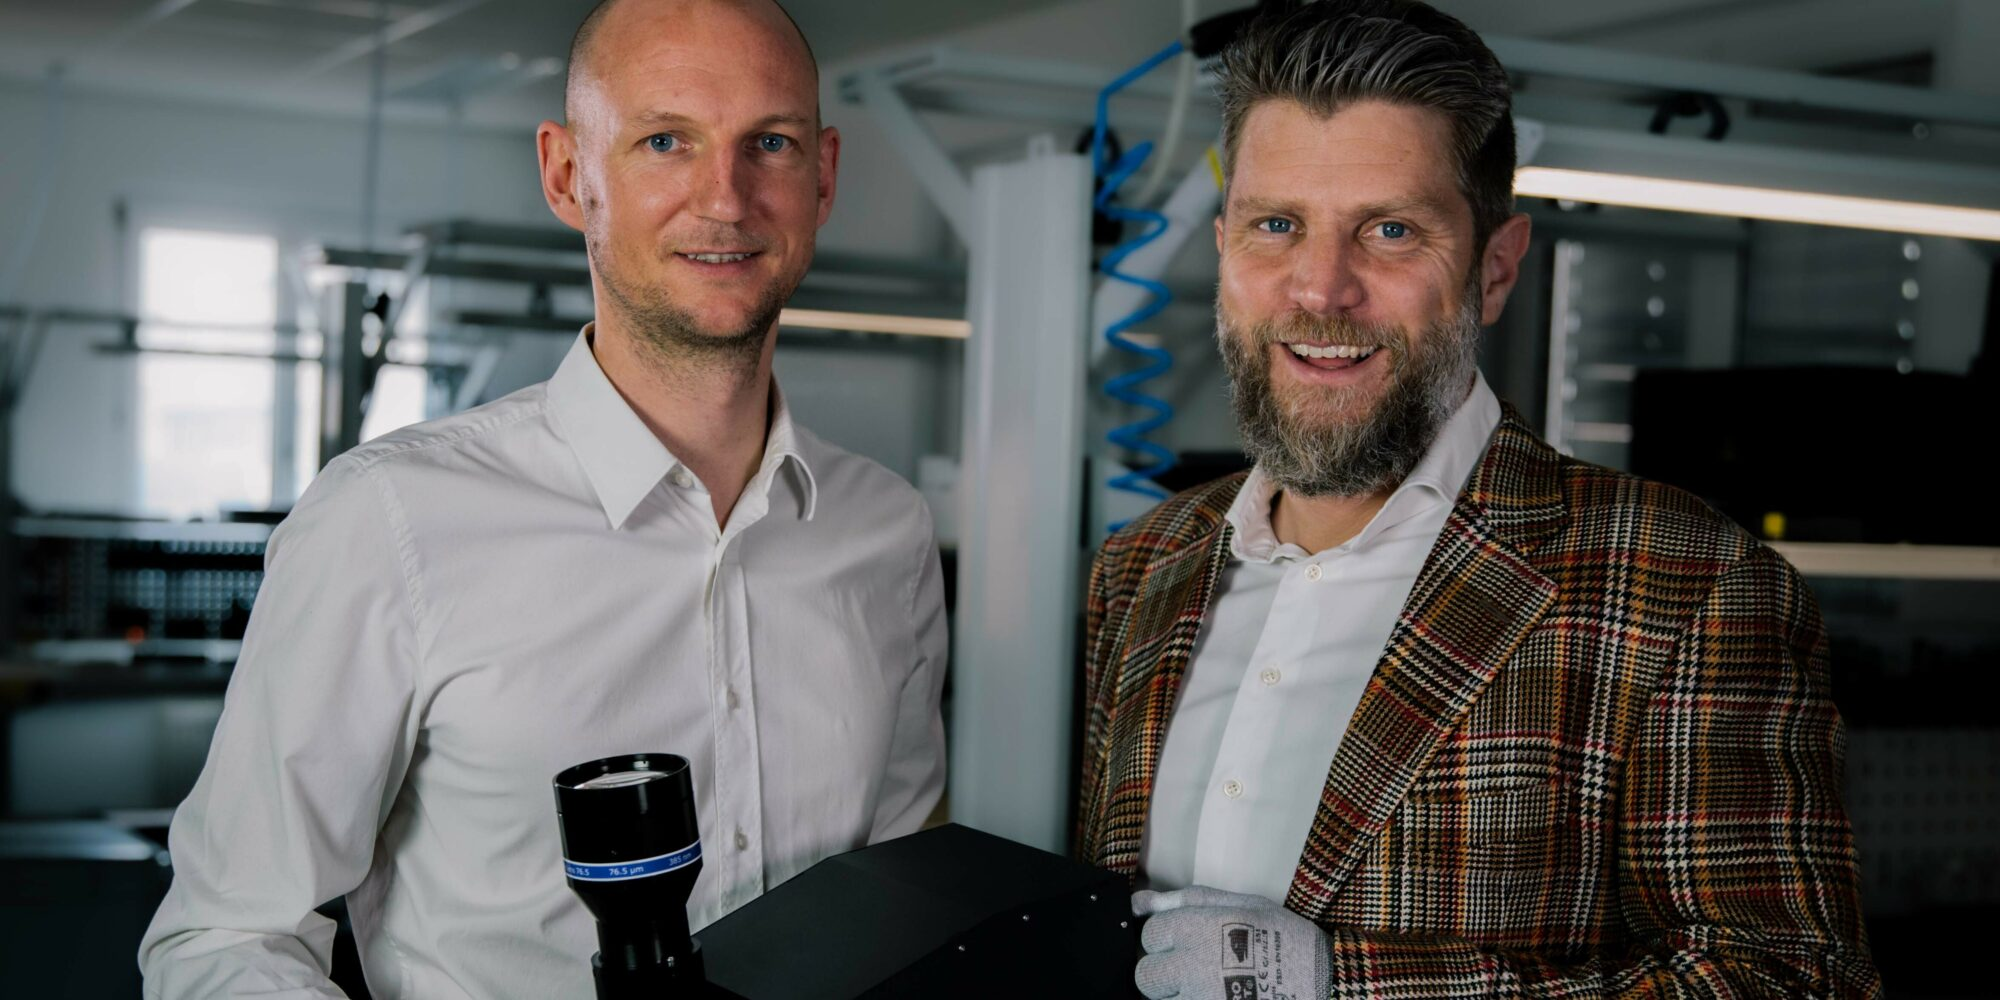 In April 2021 In-Vision launched the new Phoenix-Light Engine. It´s the first industrial 4K UV DLP Light Projector and designed for high reliability over a long lifetime in 24/7-mode